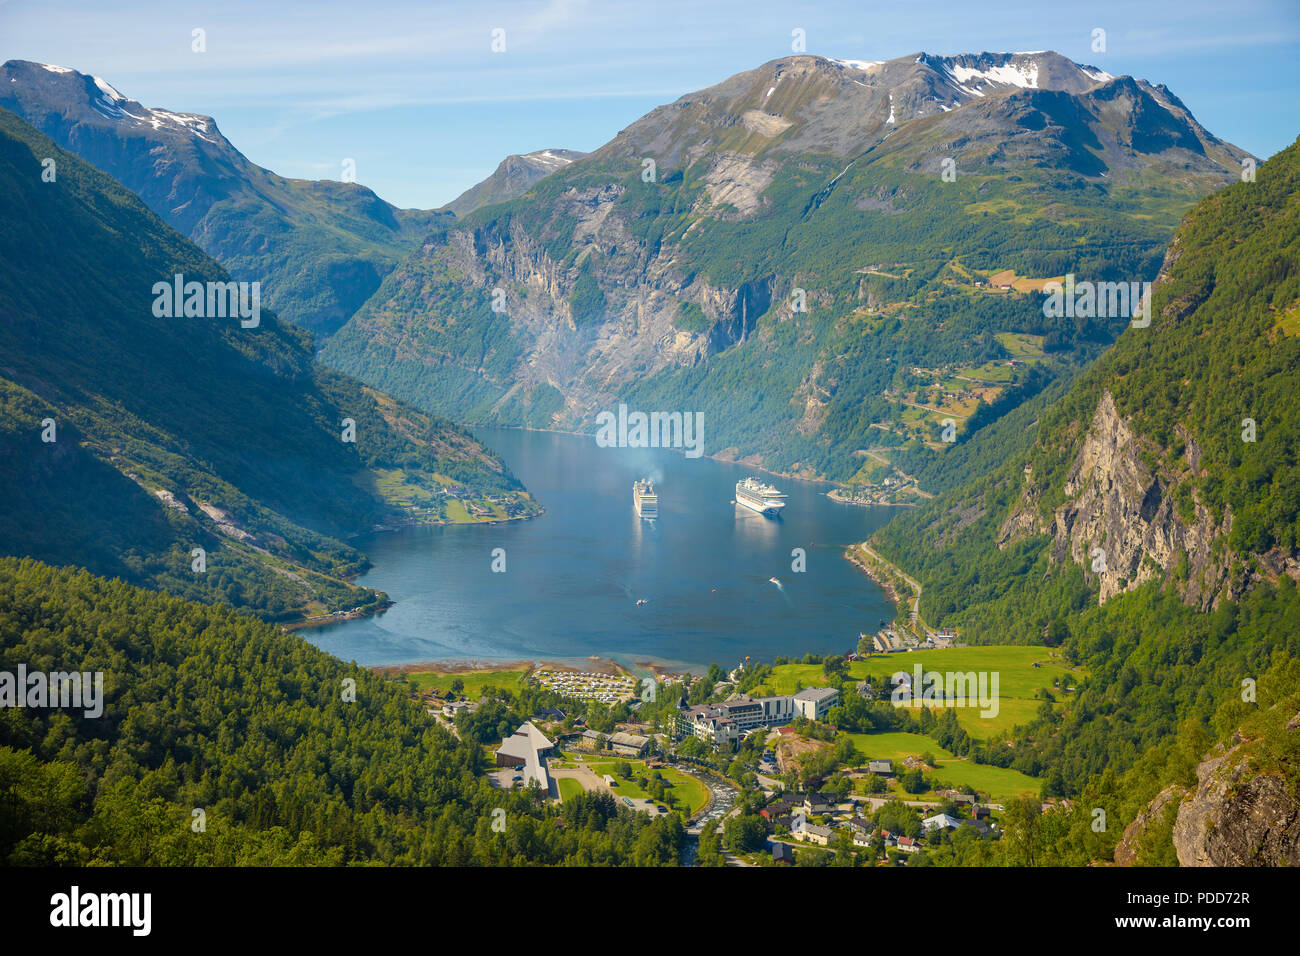 Geiranger fjord from mountain viewpoint, Norway - Stock Image